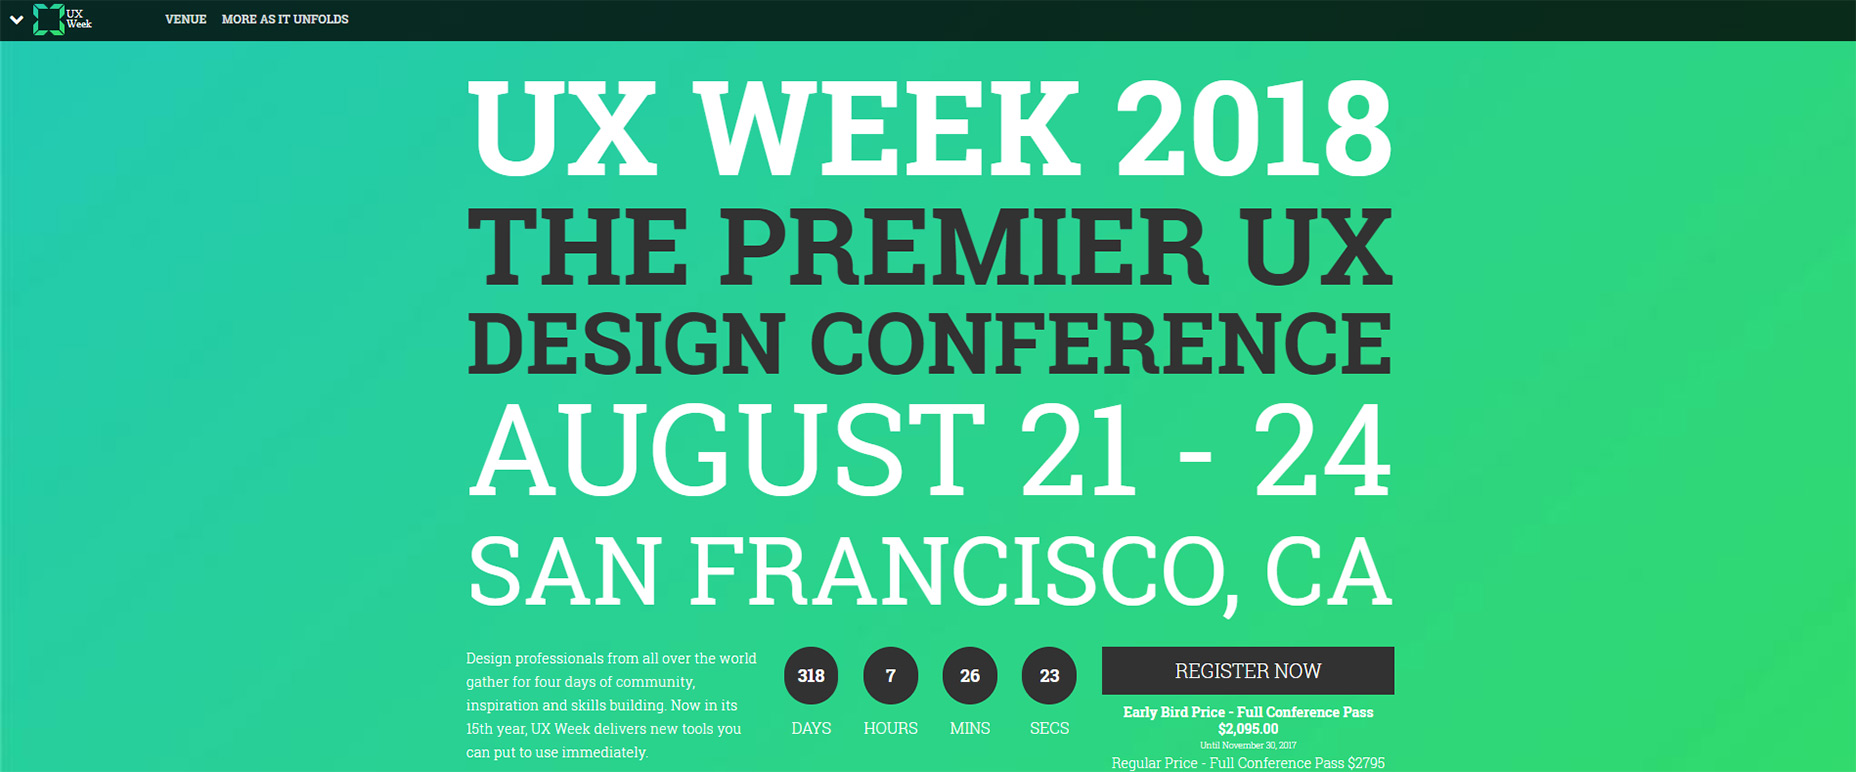 07-ux-week-conference